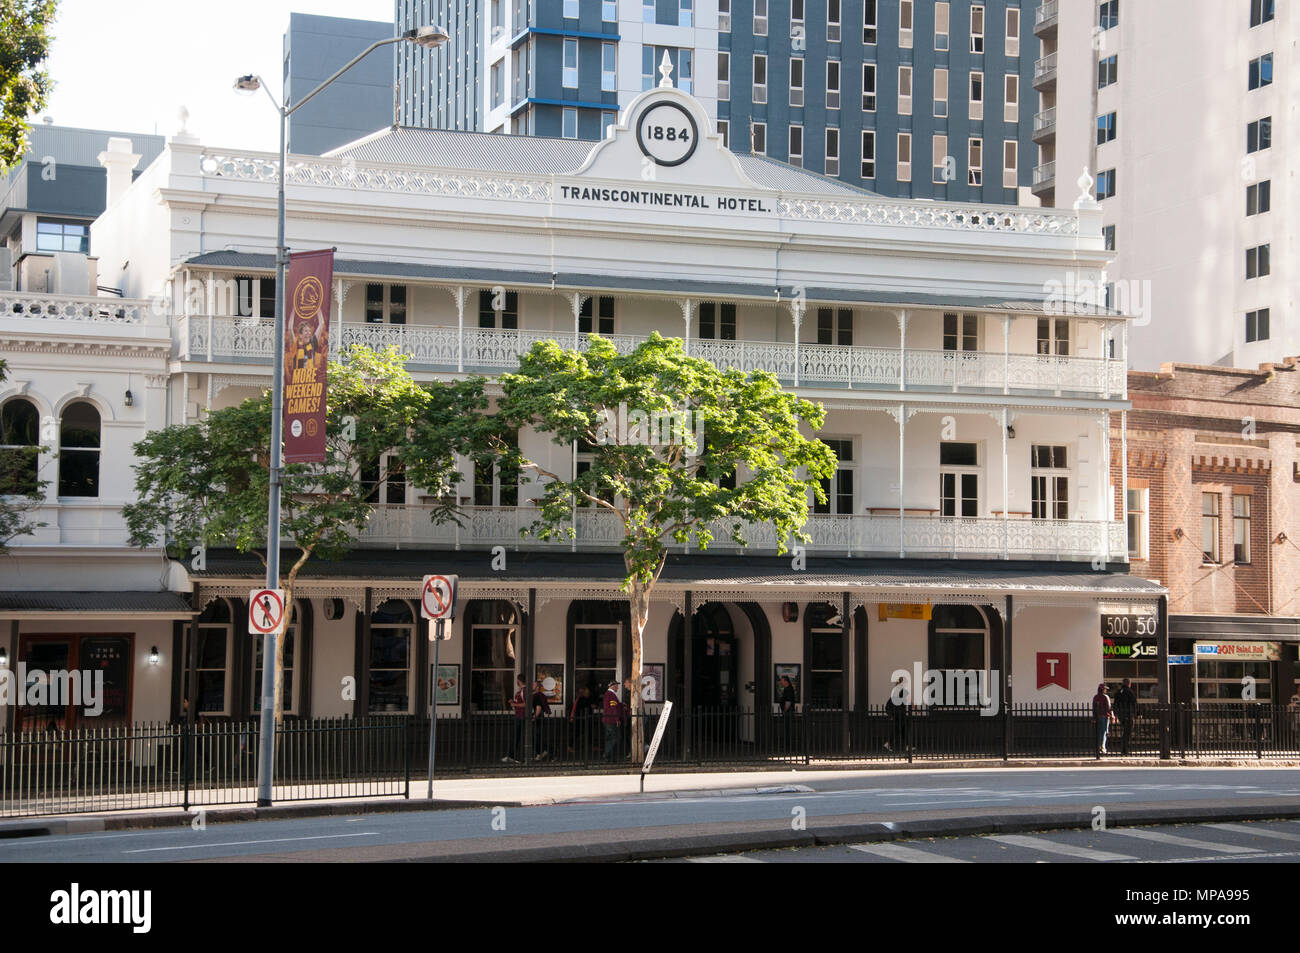 The Victorian-era Transcontinental Hotel (1884) on Roma Street, Brisbane, Queensland, Australia - Stock Image